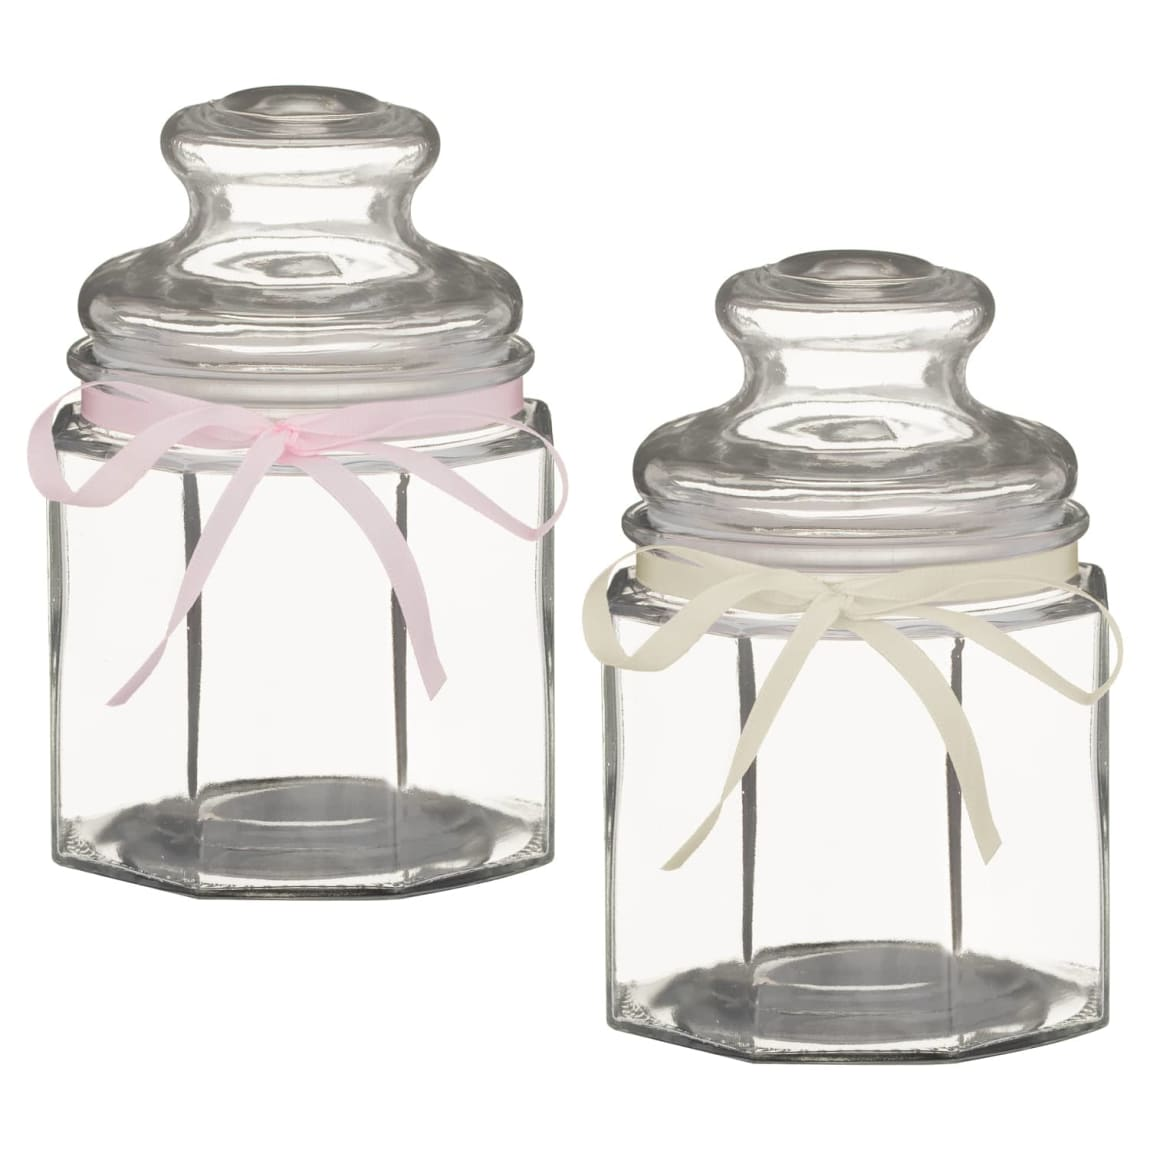 Angular Decorative Jar & Ribbon - White